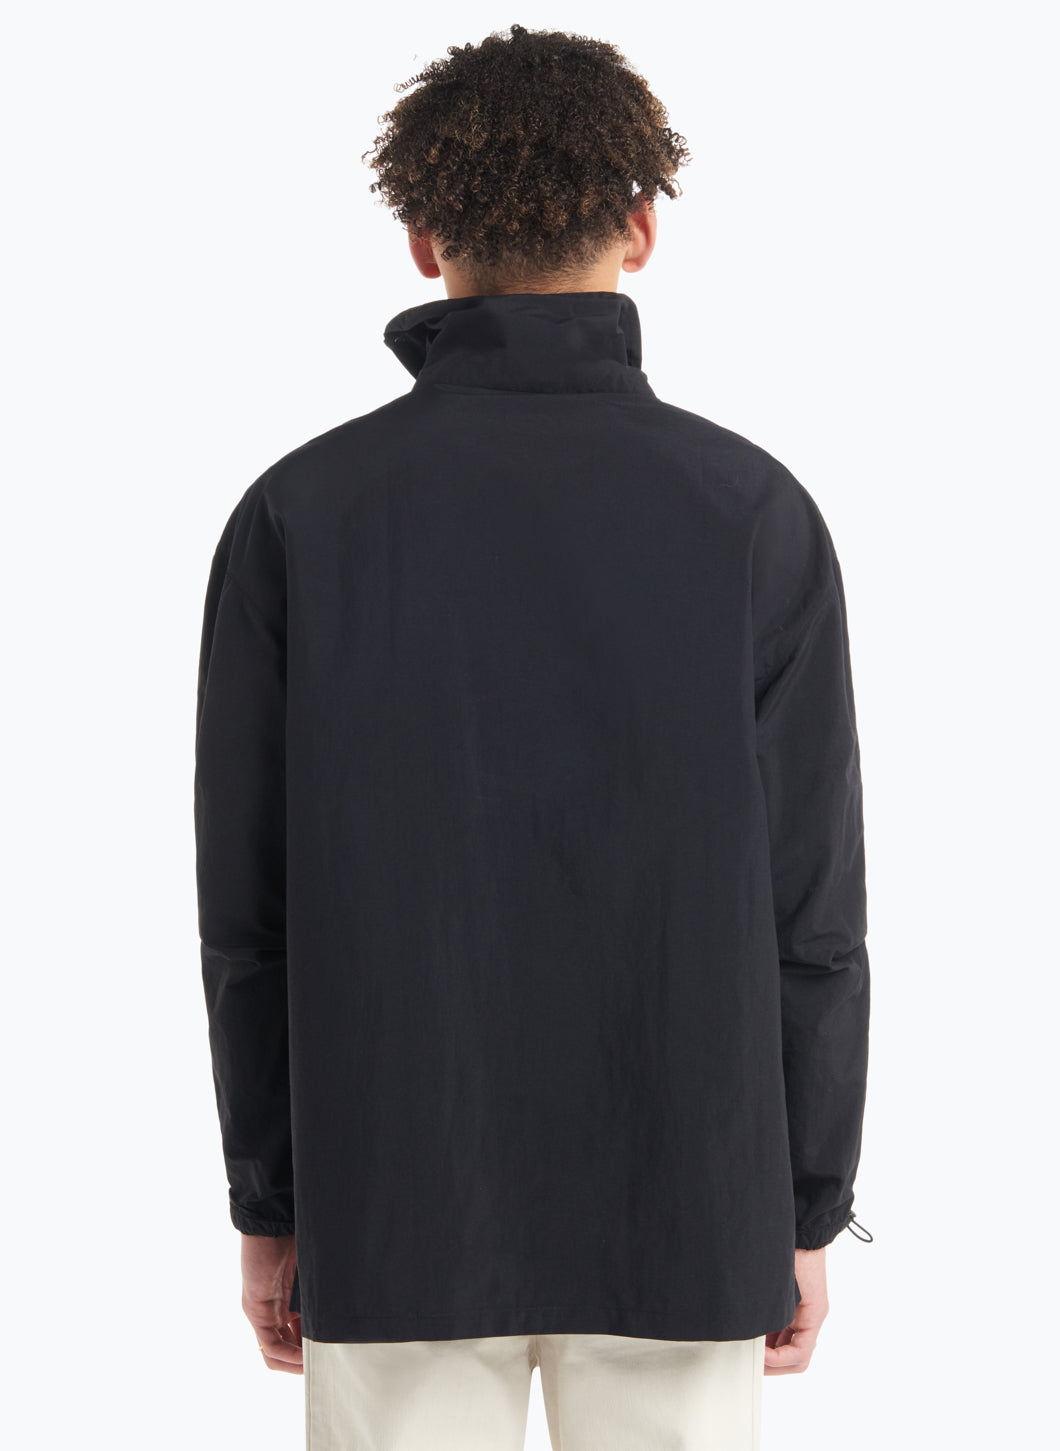 High Funnel Neck Sweatshirt with Side Buttons in Black Technical Material